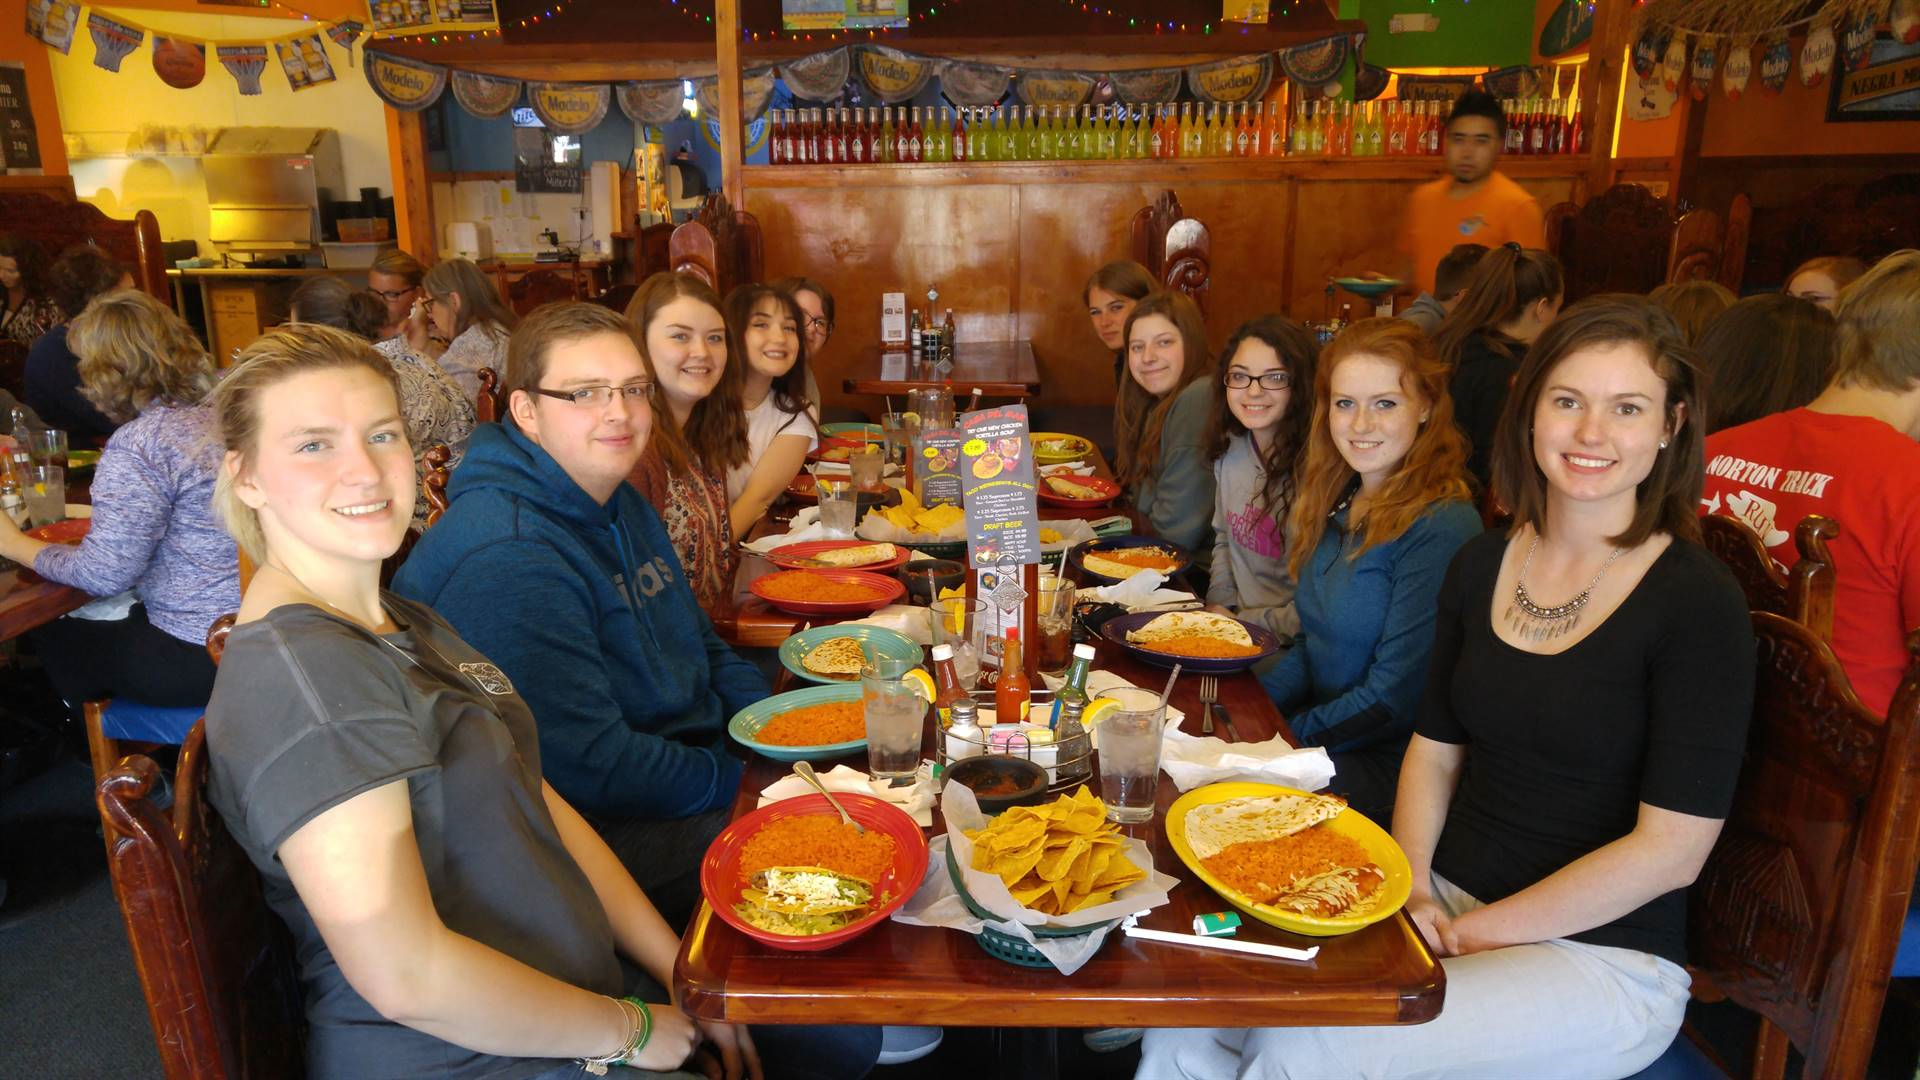 Spanish 4 field trip to Casa Del Mar. Students spoke in Spanish the entire time, both to the waiters